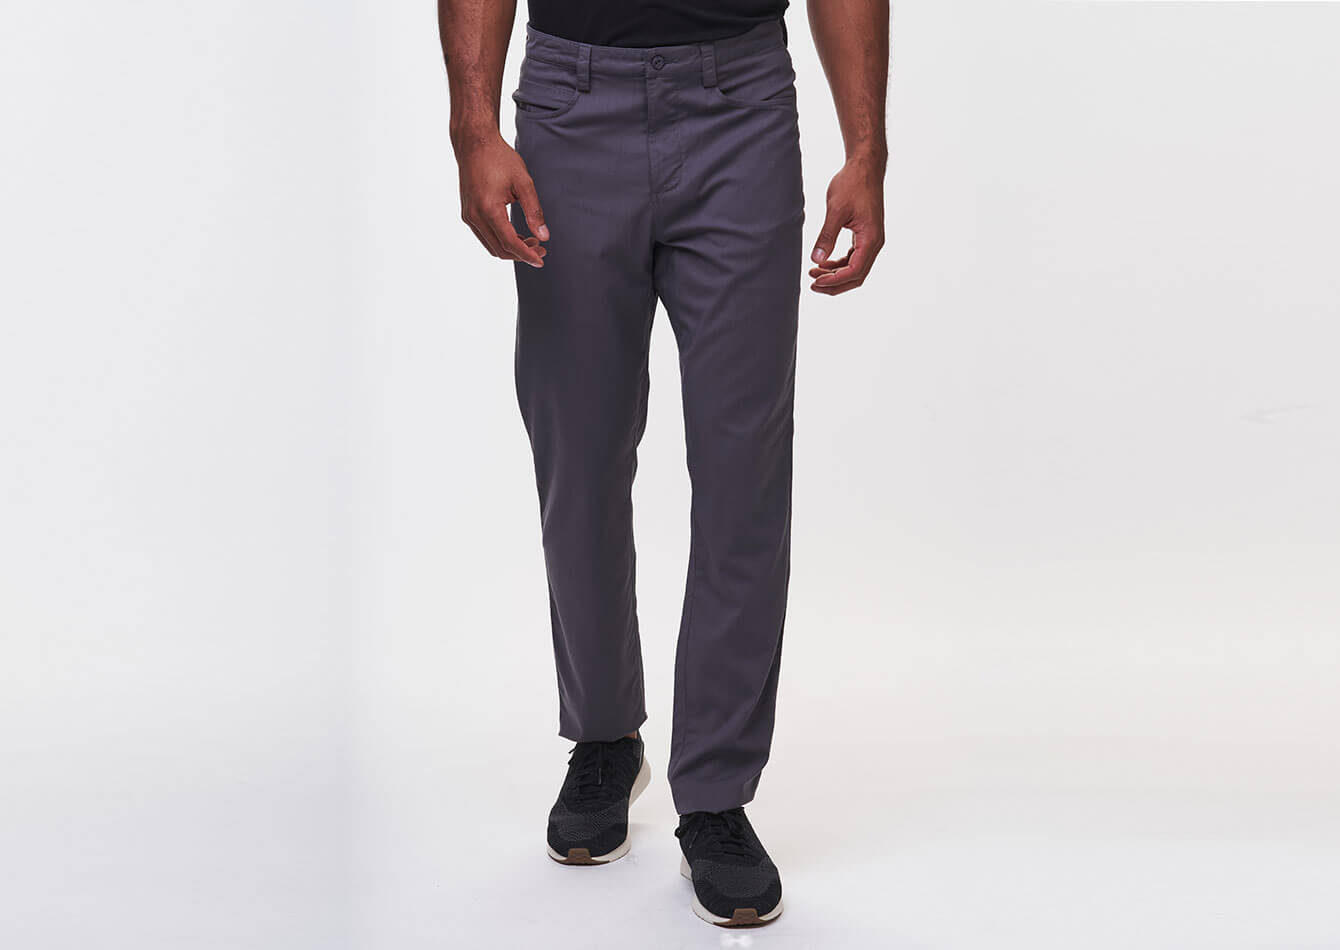 Motion Pant - tasc Performance - Bamboo Pants (Graphite)